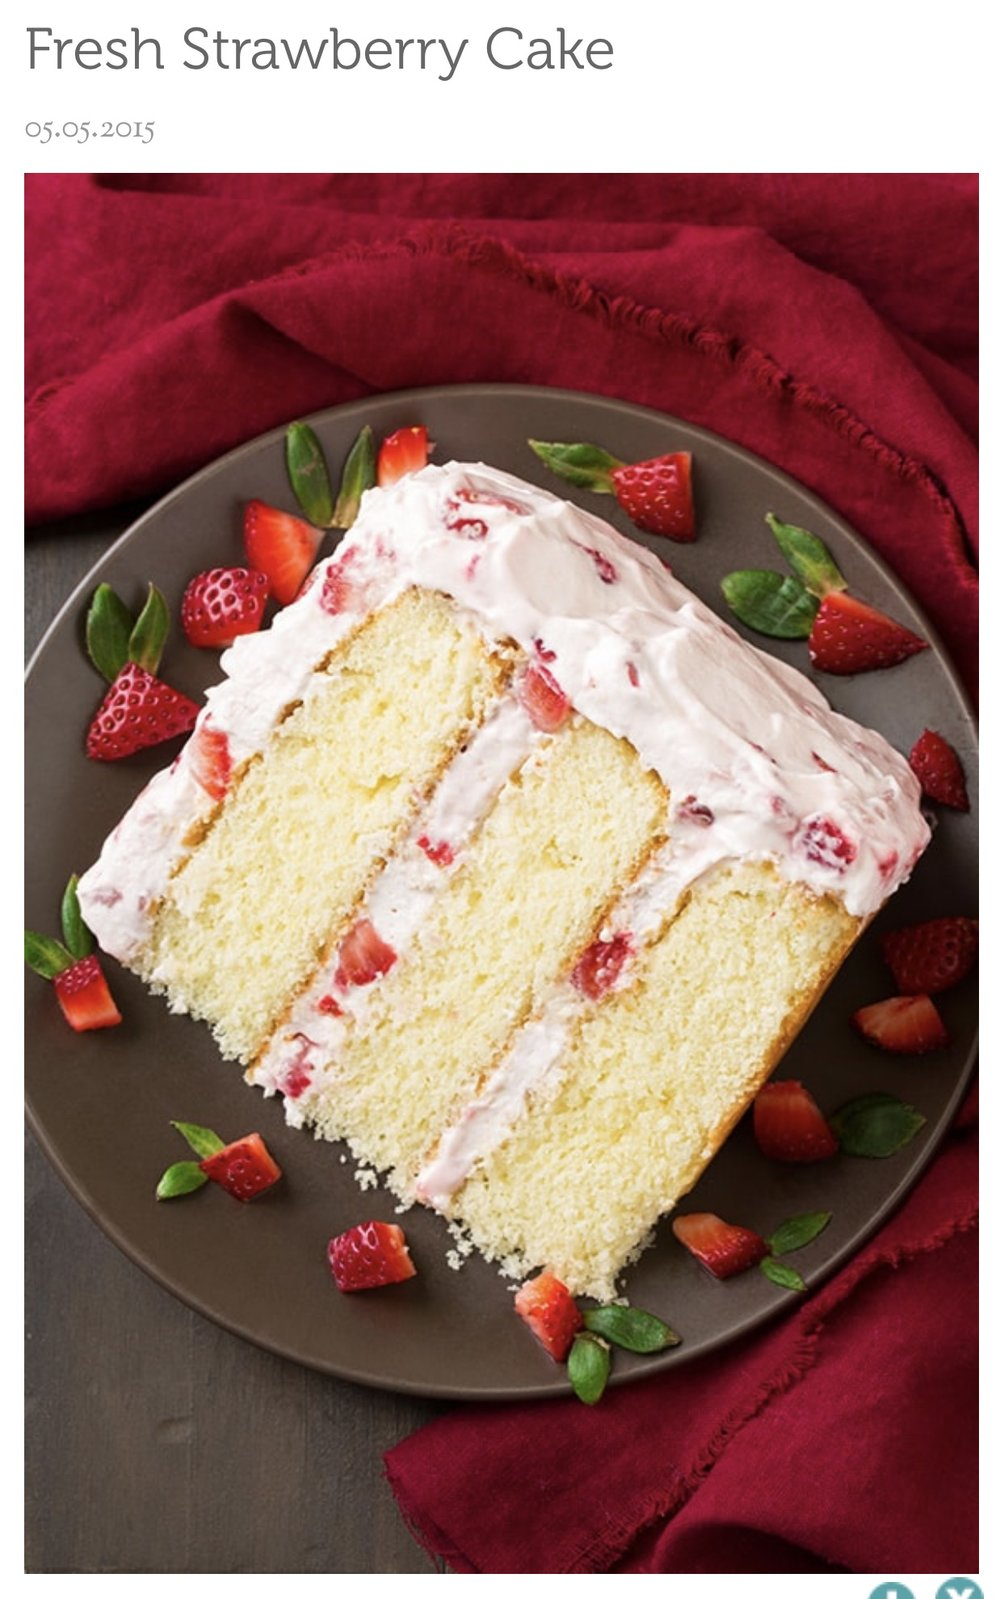 Stawberry Cake.jpg